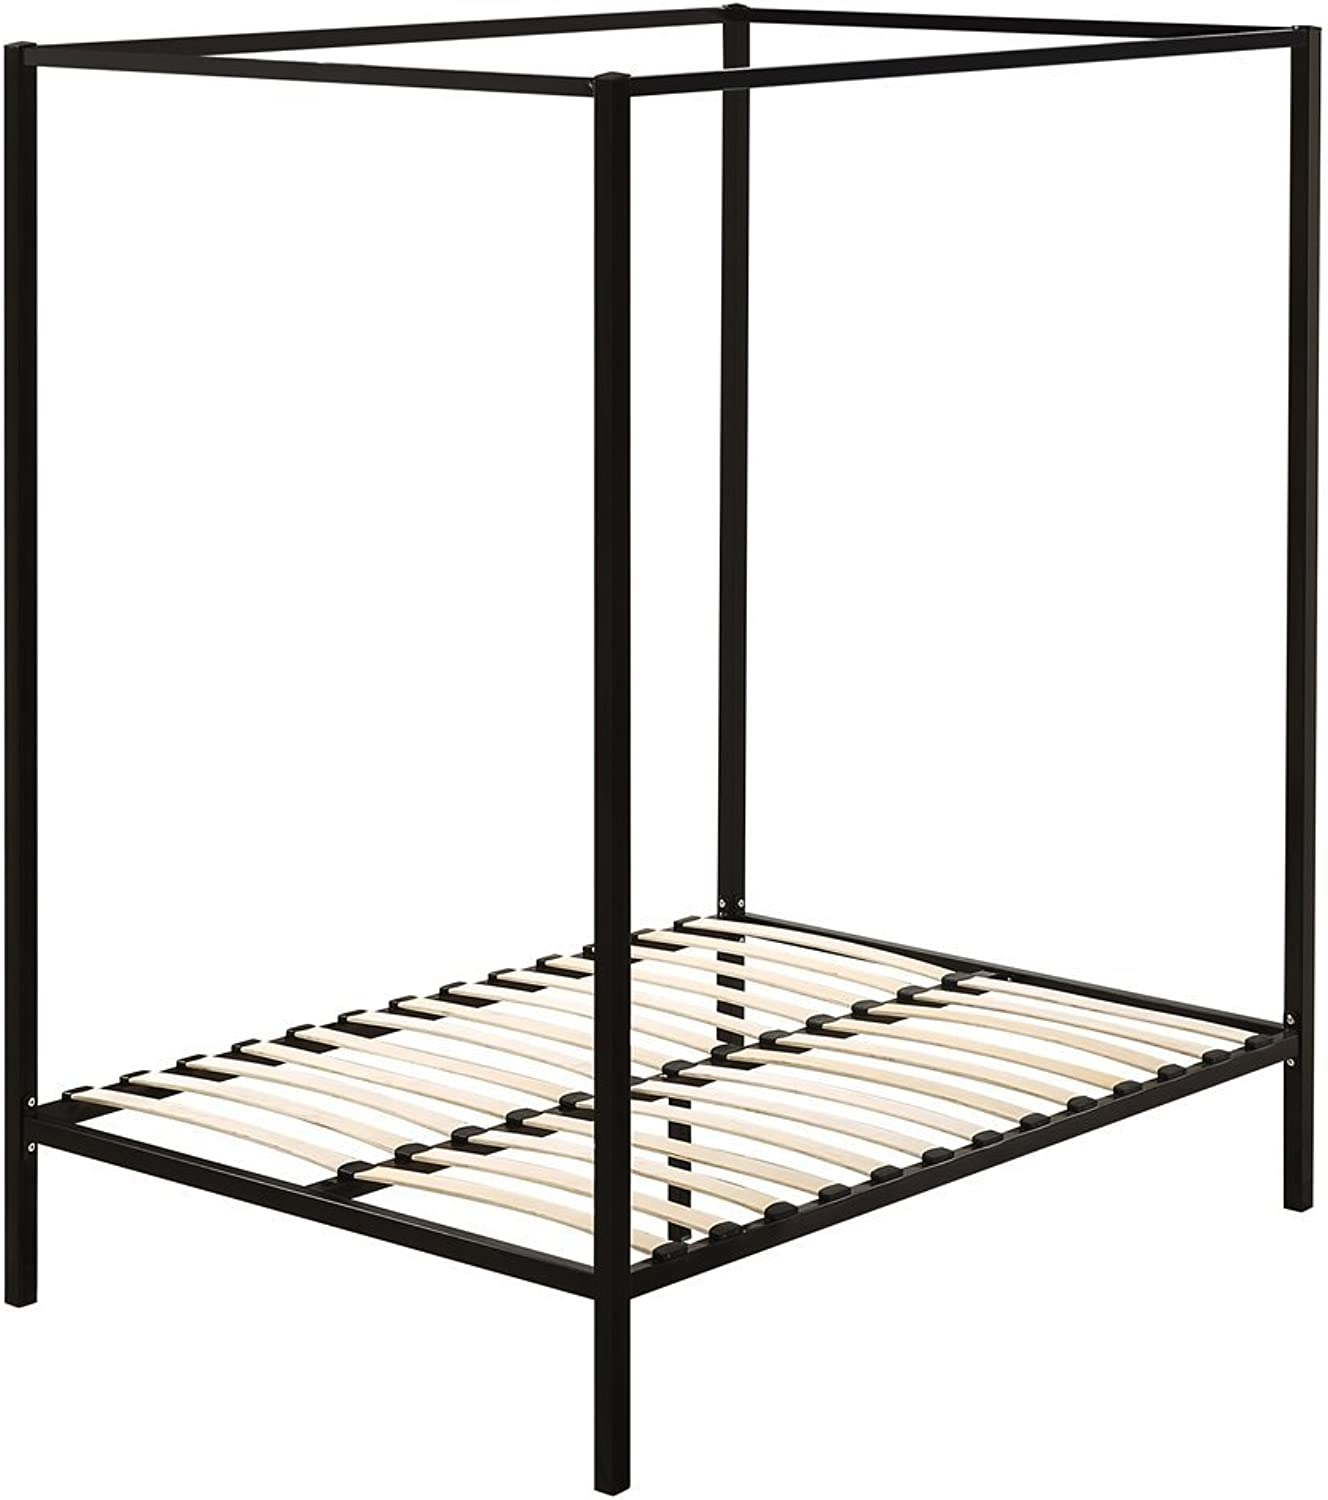 4 Four Poster Double Bed Frame with Black Finish